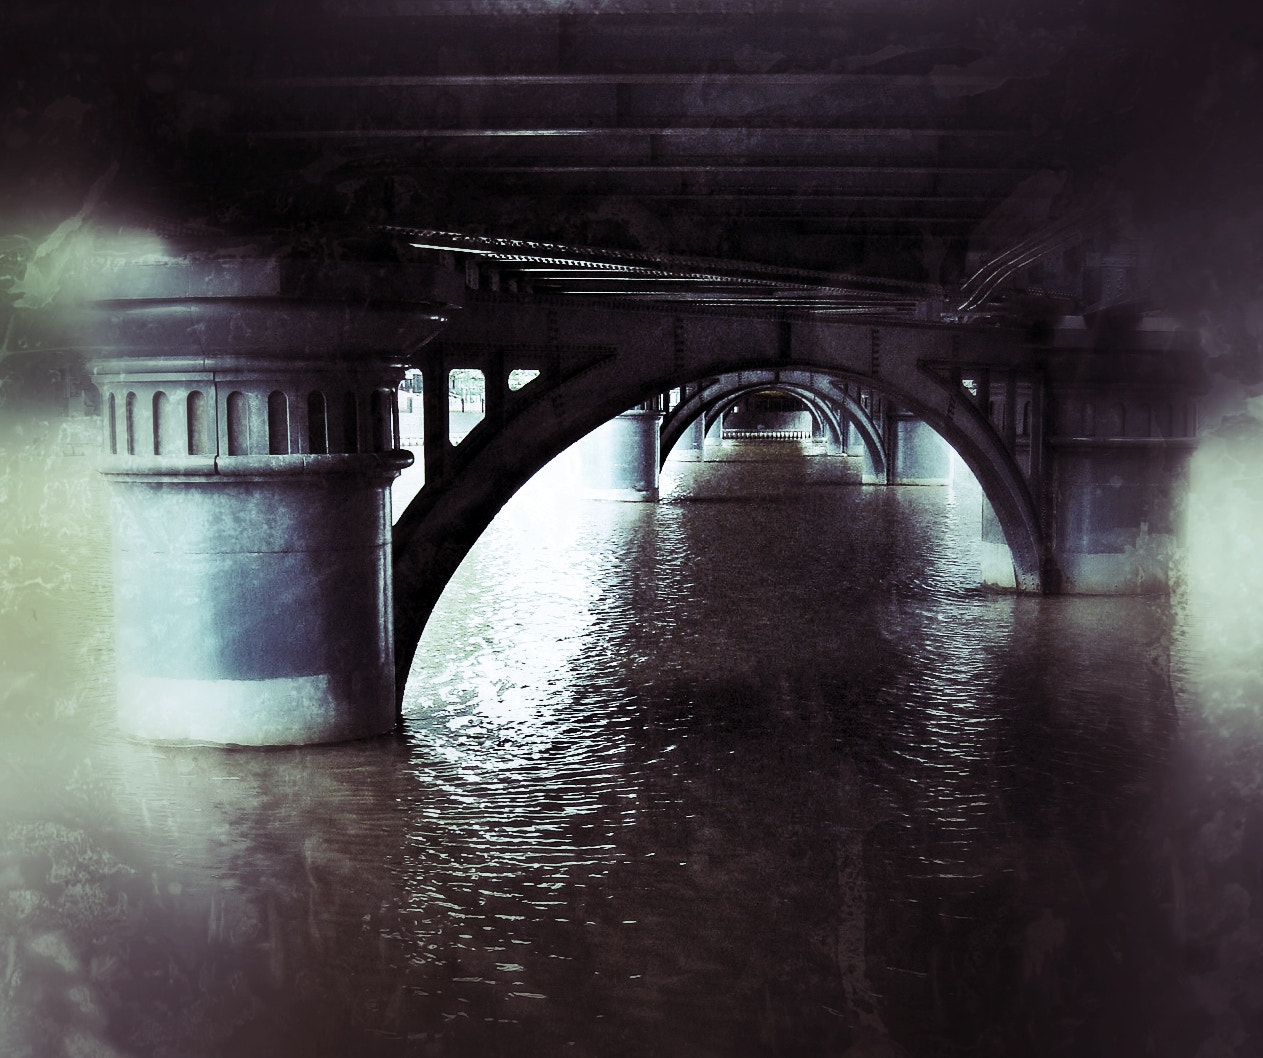 Photograph The eye under the bridge by Gordon Watters on 500px